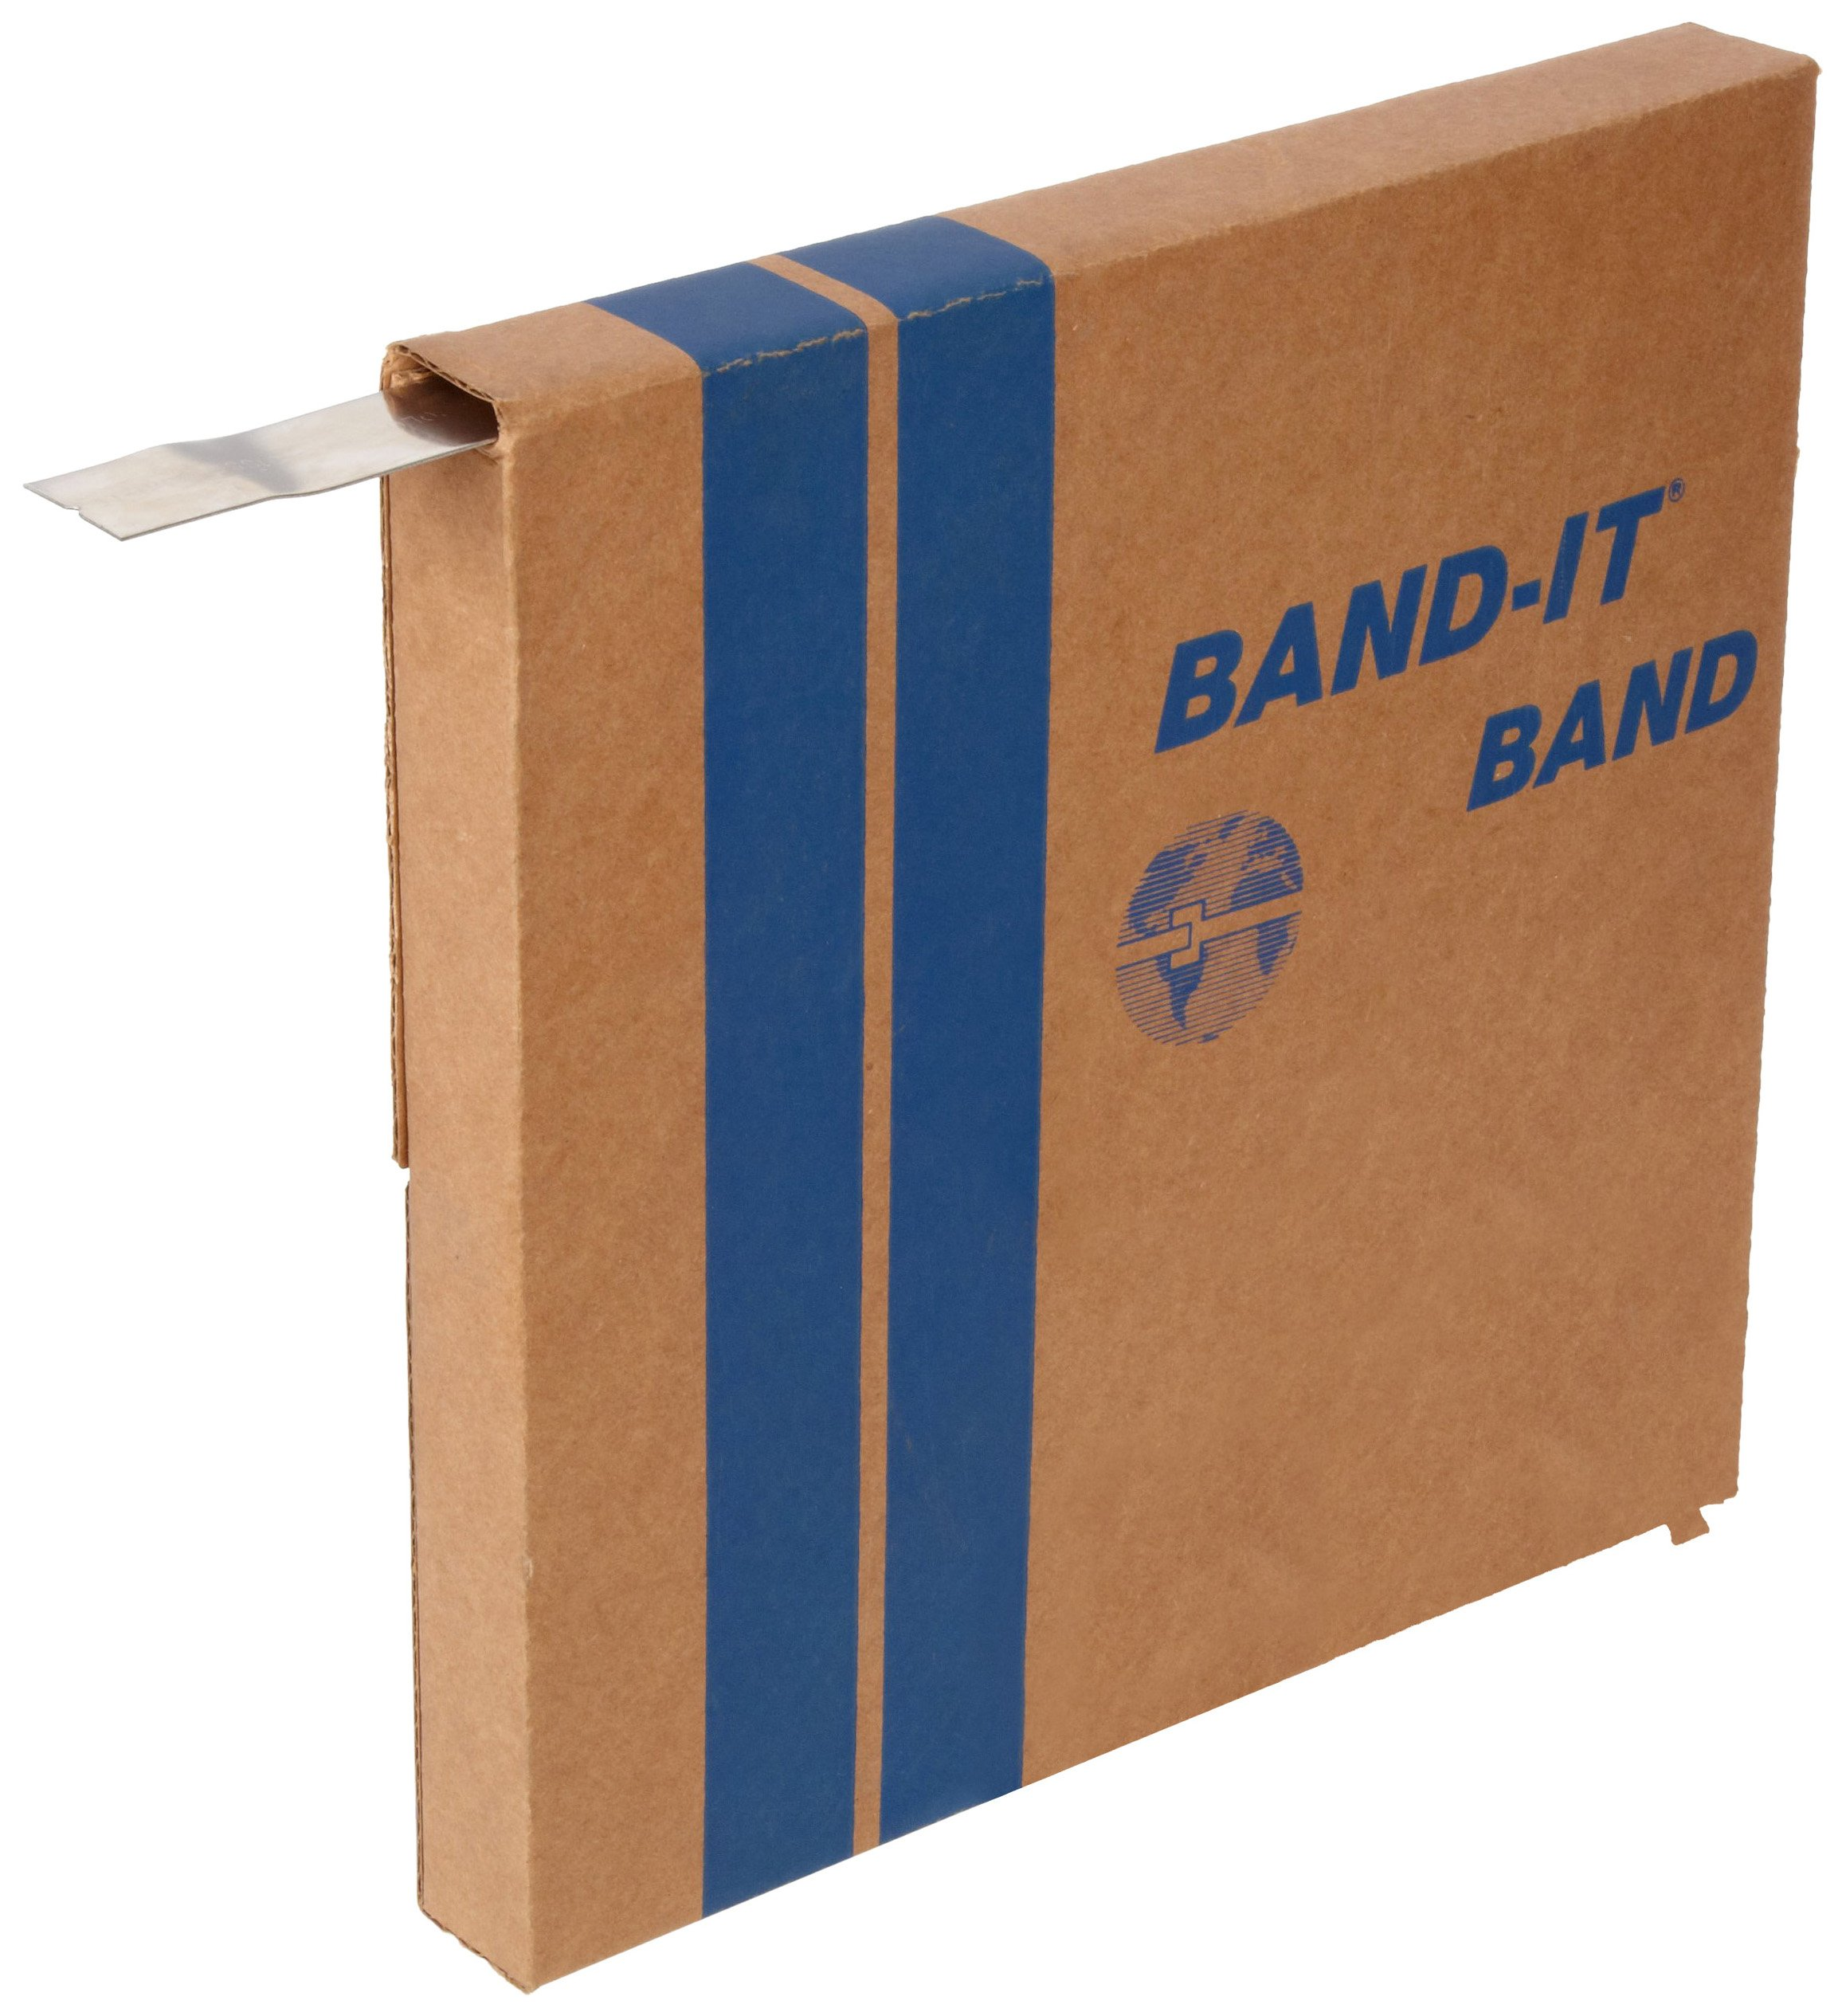 BAND-IT G43199 201 Stainless Steel Giant Band, 1'' Width X 0.044'' Thick, 100 Feet Roll by Band-It